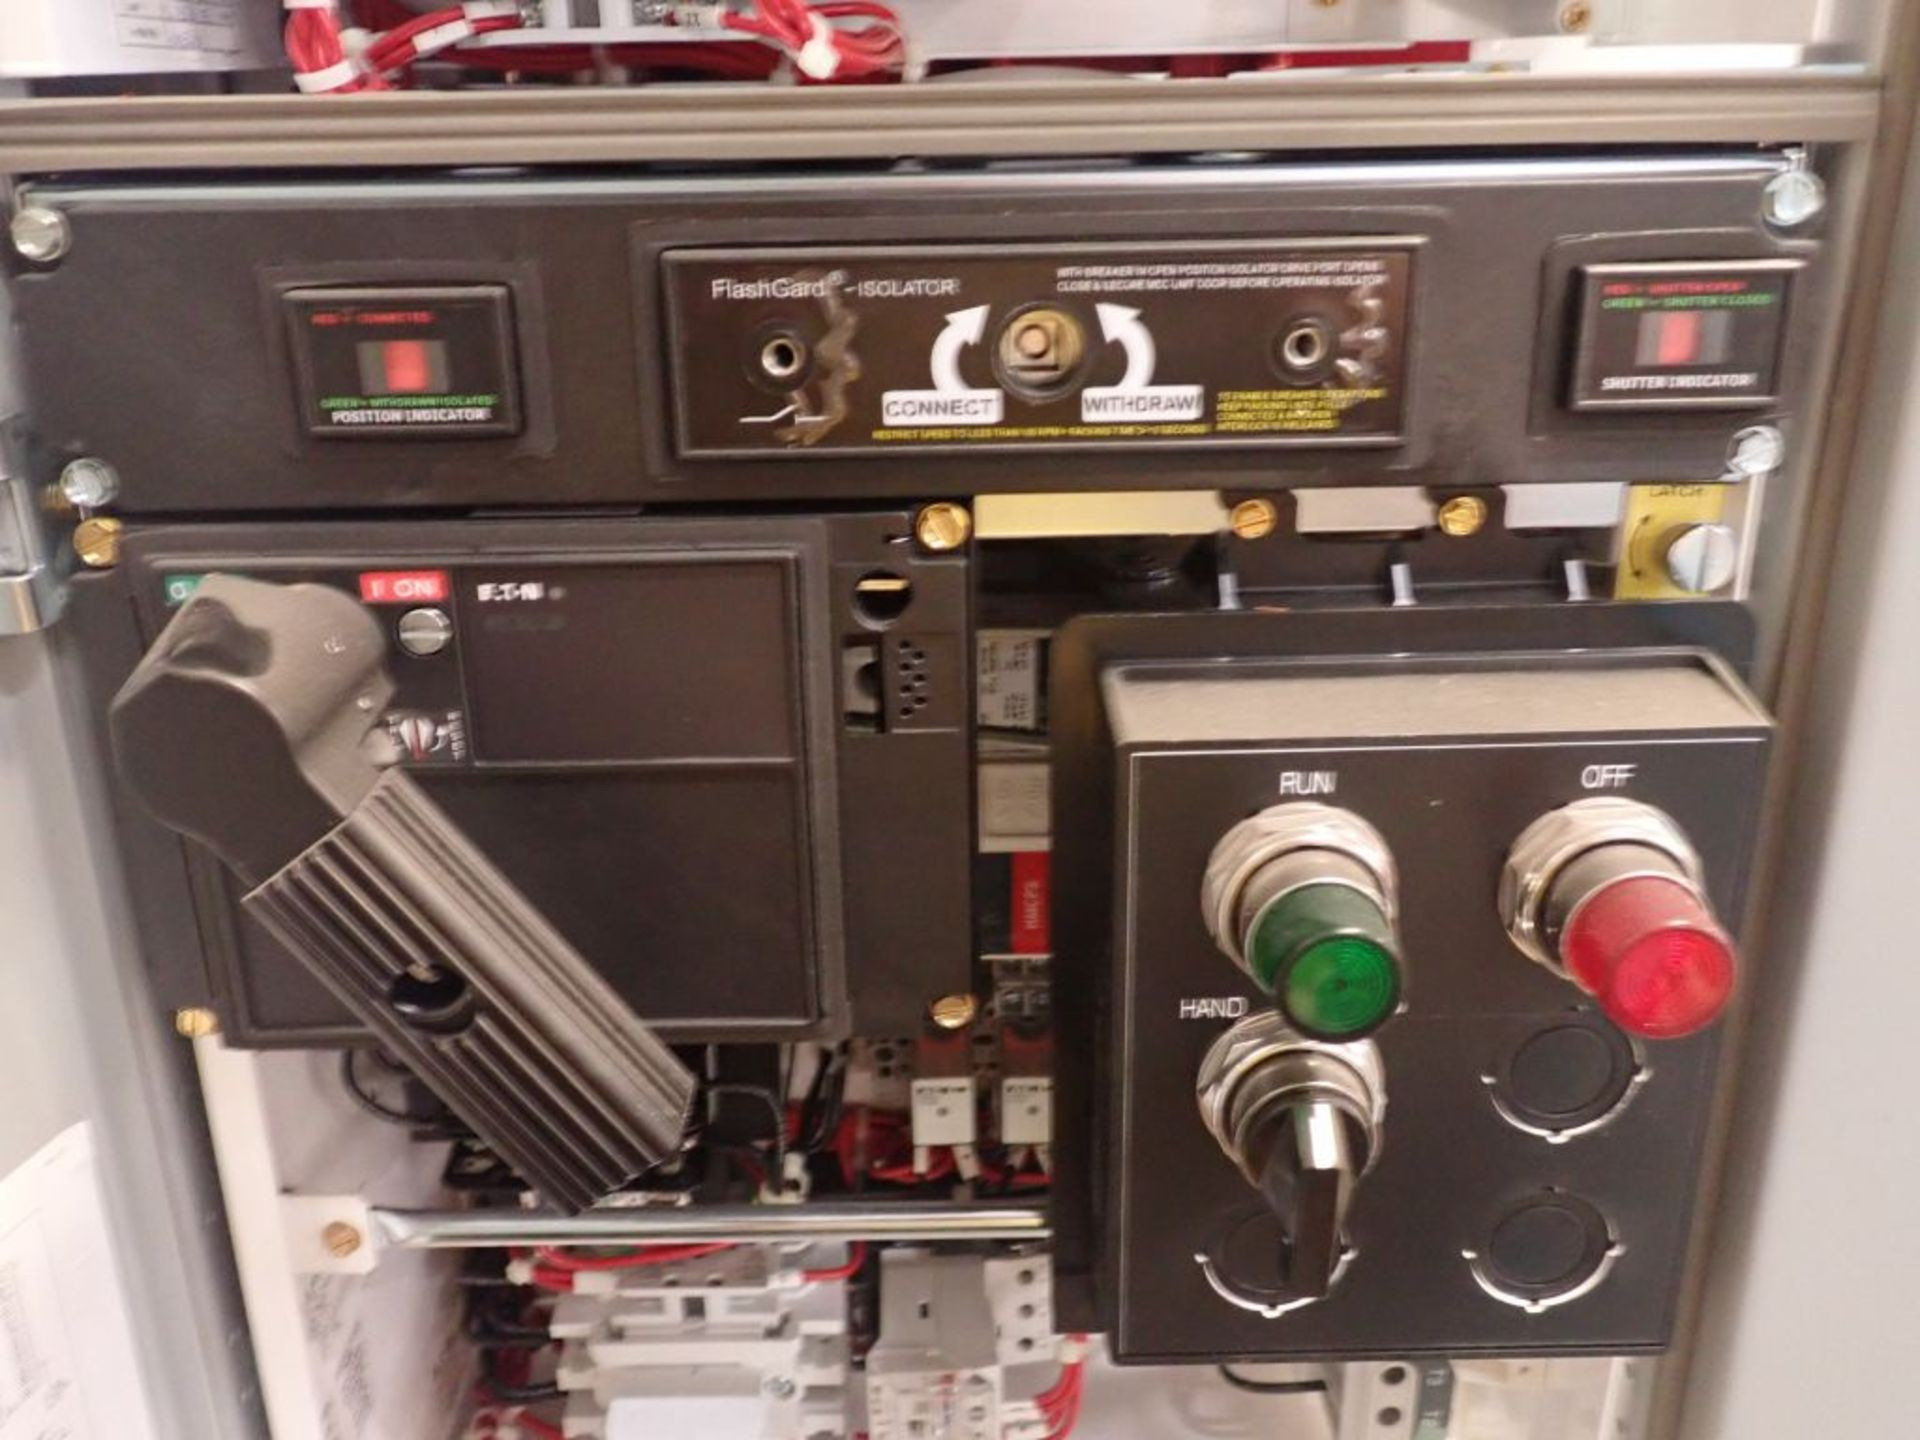 Eaton Freedom Flashgard Motor Control Center w/Components | (5) F206-15A-10HP; (4) F206-30A-10HP; ( - Image 44 of 84